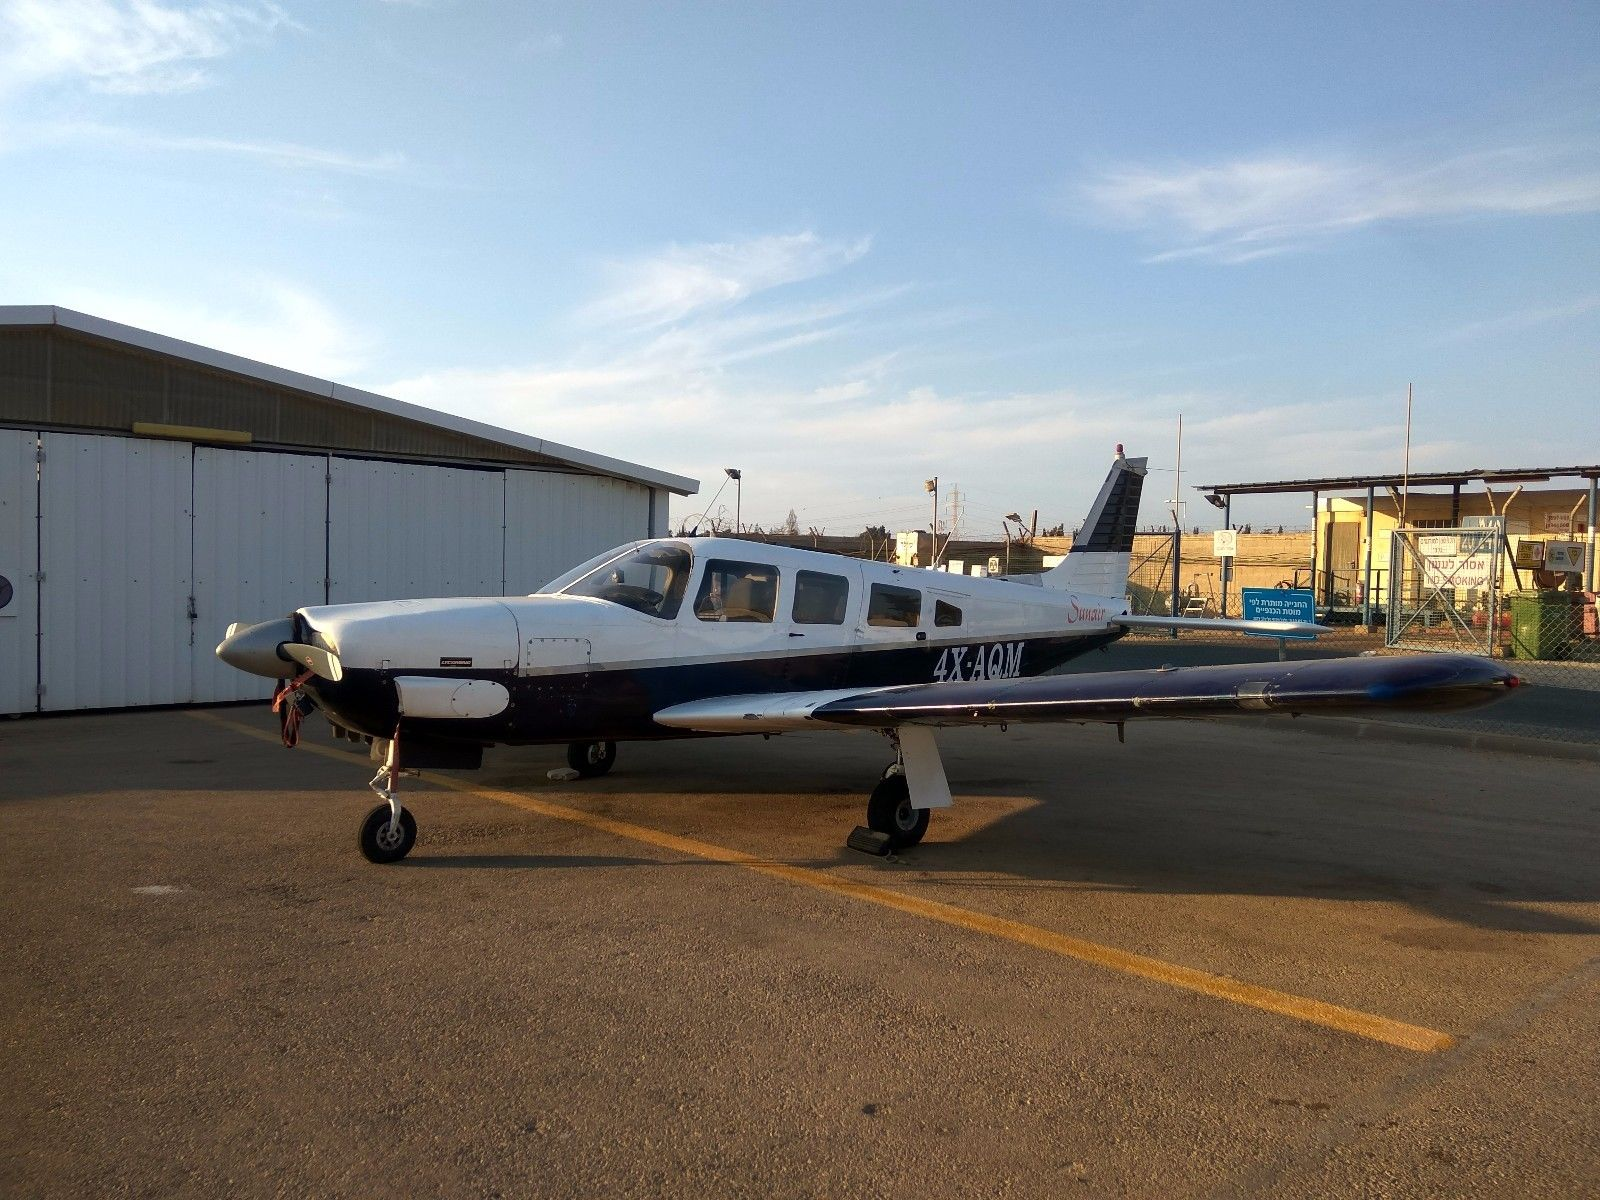 redone 1976 Piper Lance PA32 300R aircraft for sale